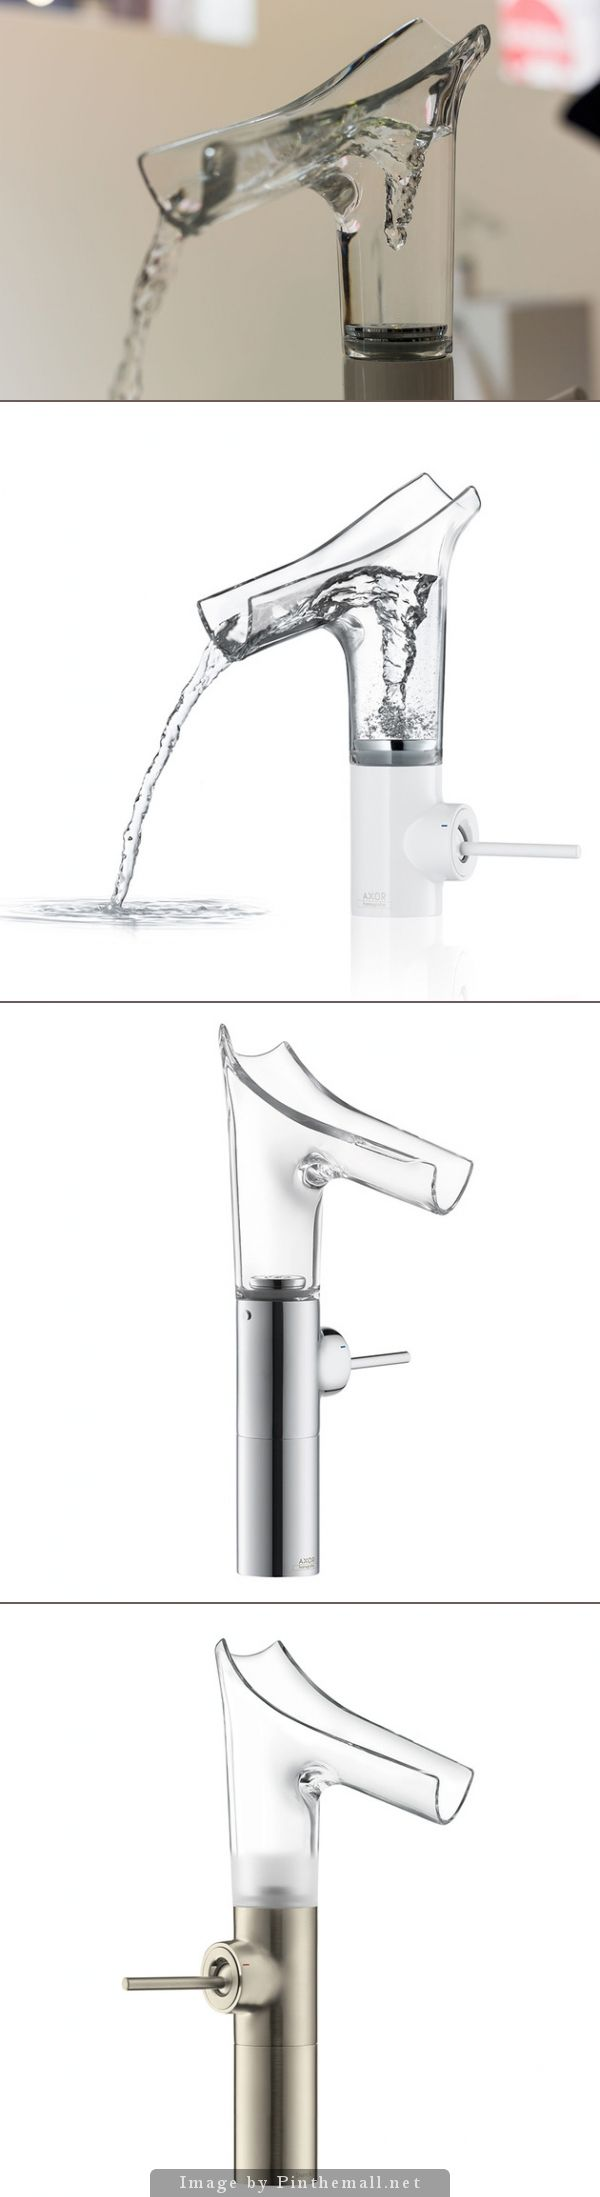 Faucet with Clear Glass Spout: Axor Stark V designed by Phillip Starck for a partnership between Hansgrohe and Axor. When the mixer is turned on, a water vortex is created -- and sent rushing up the glass spout where it cascades out like a waterfall. For single or two hole applications.